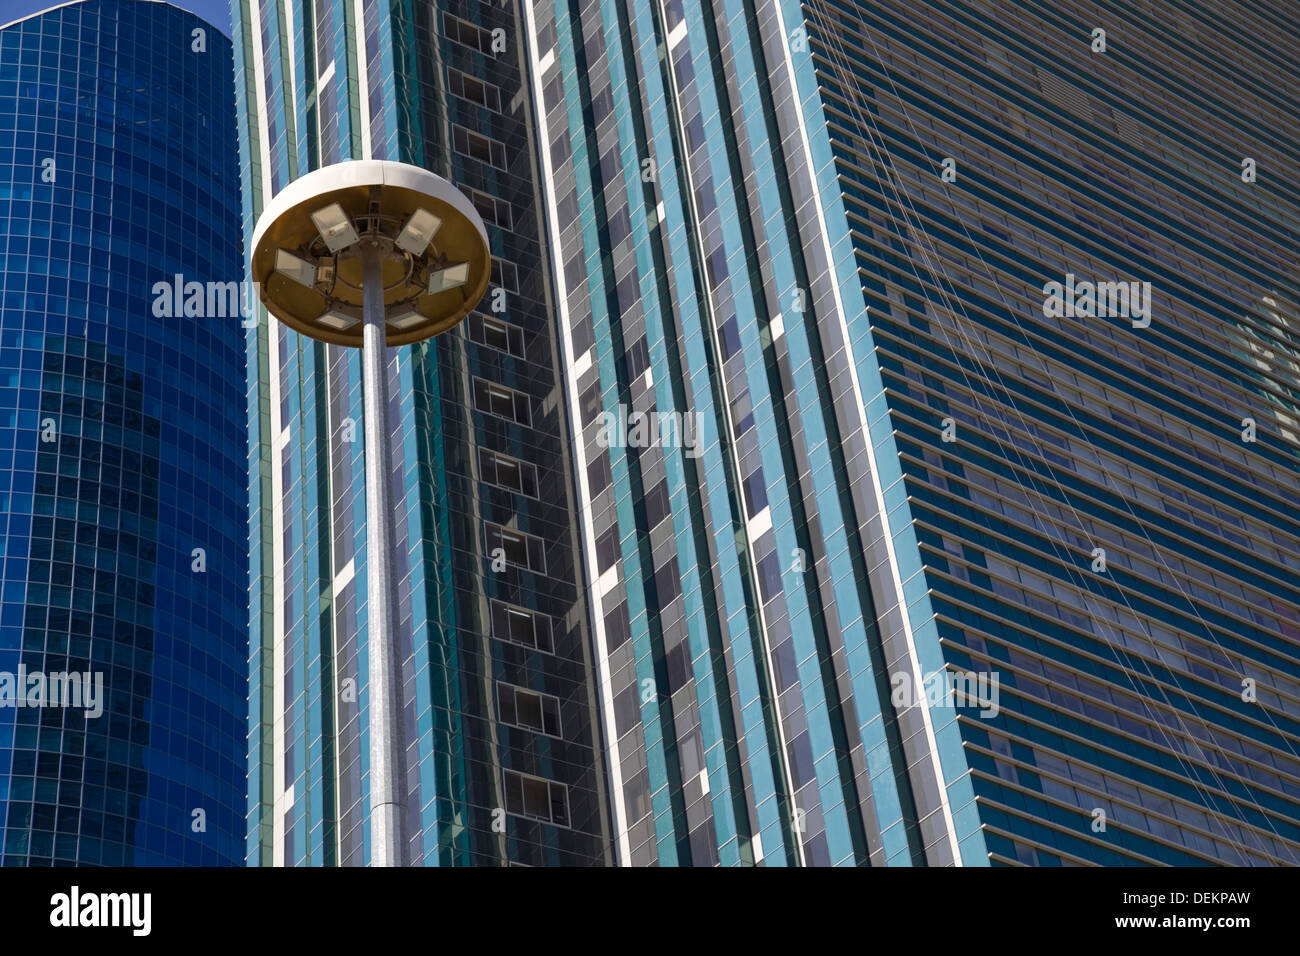 Modern buildings in Astana, Kazakhstan - Stock Image